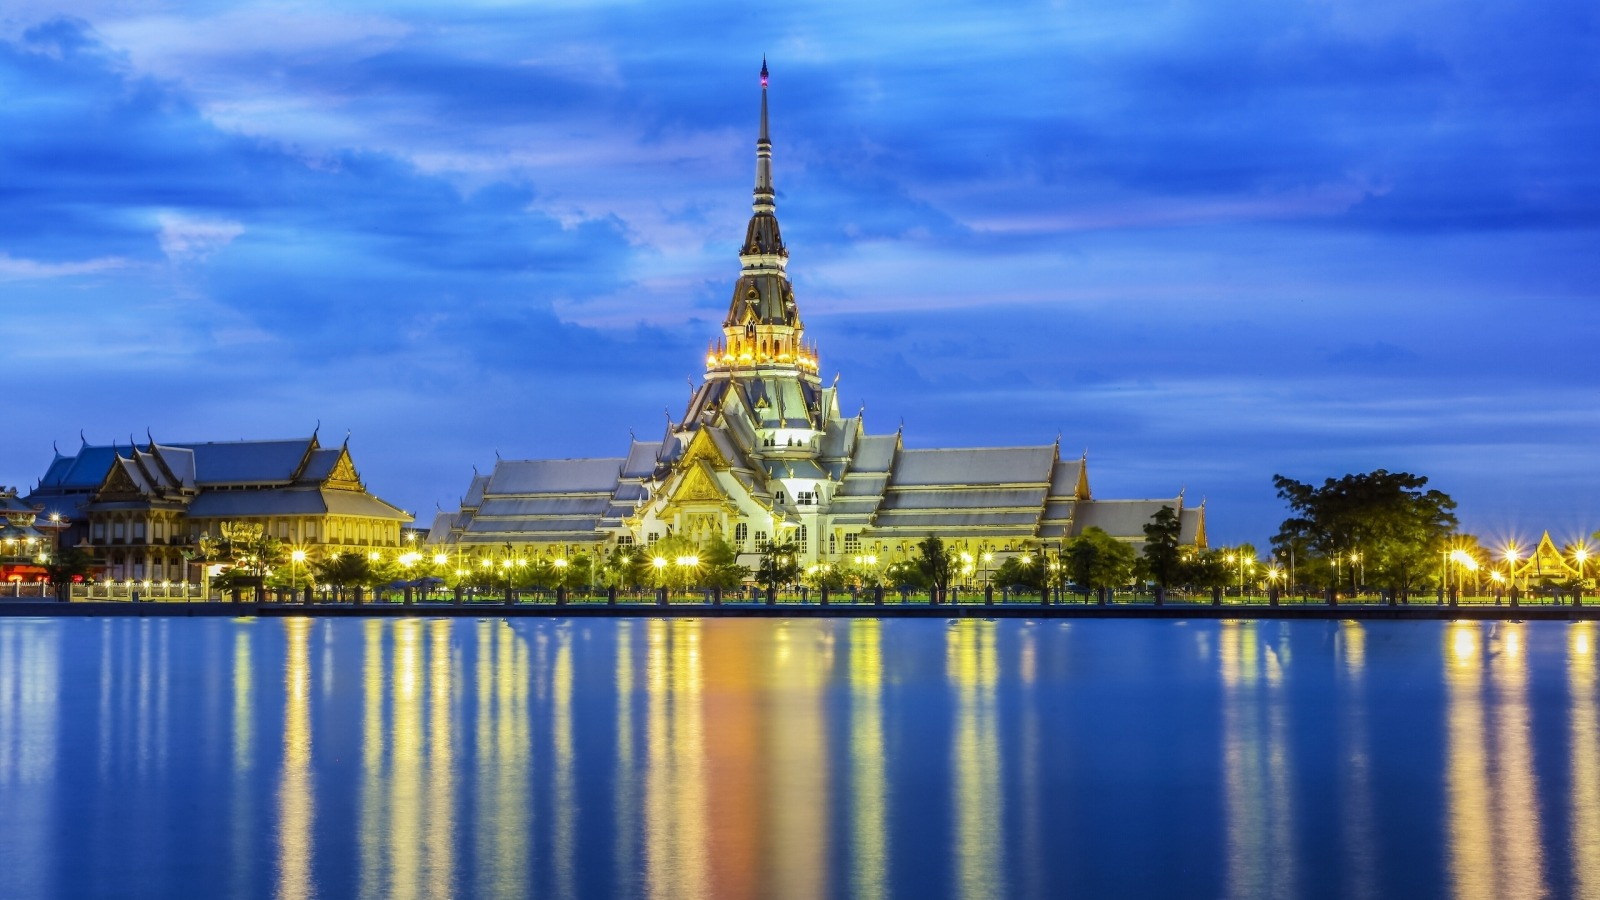 sothorn-temple-chachoengsao-869